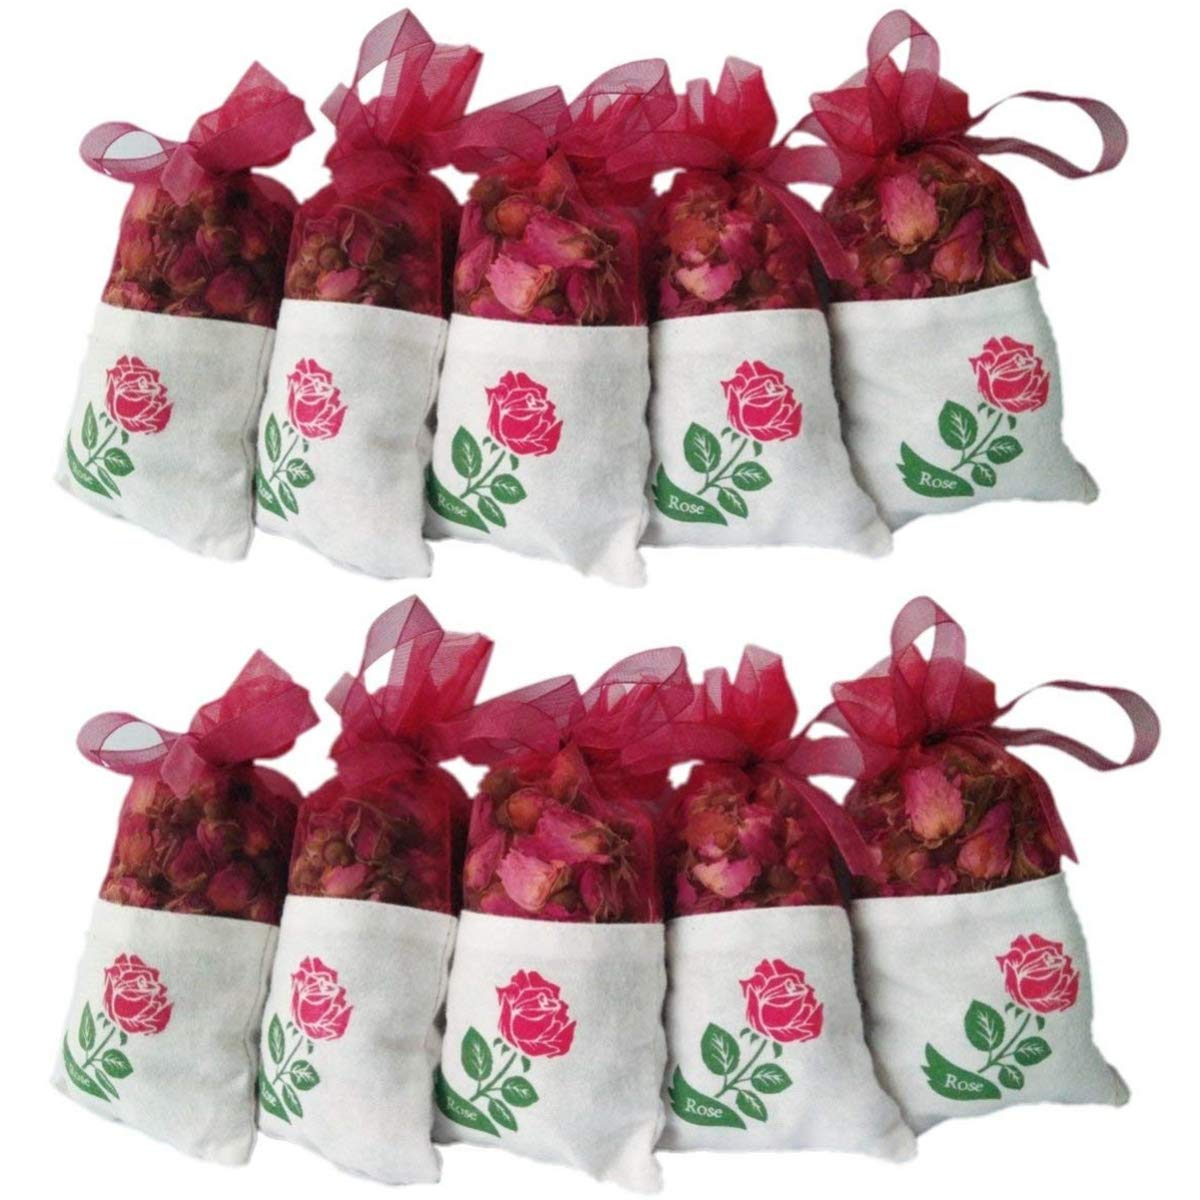 Image result for Aromatic Rose sachet organza